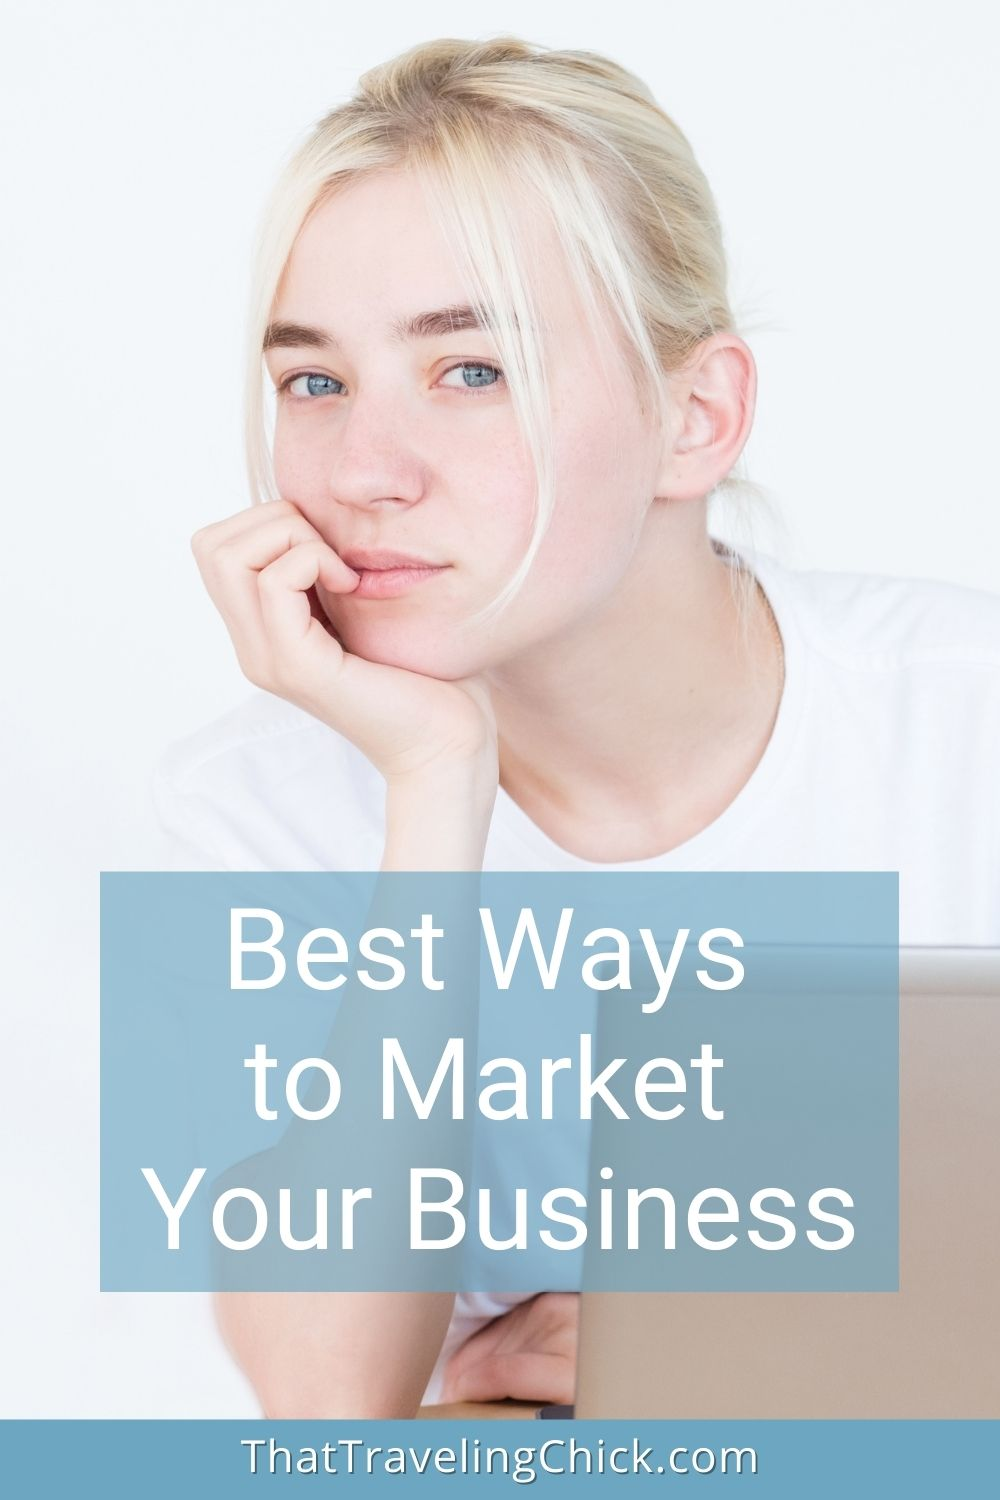 Best Ways to Market Your Business #businesspromoting